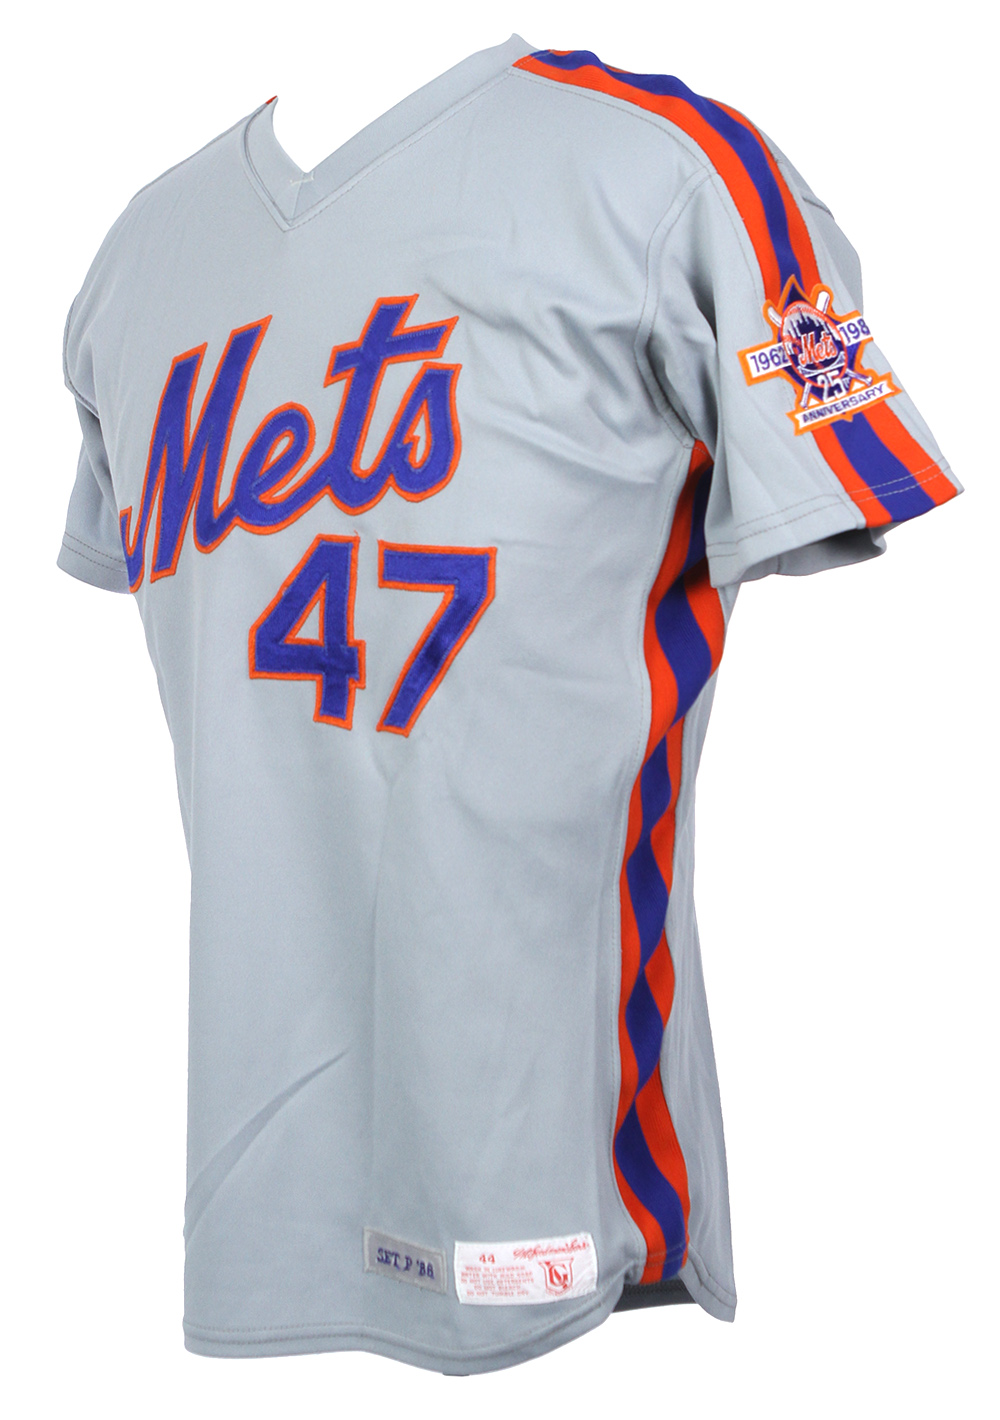 6122ab06d93 ... uk 1986 1996 new york mets game worn jerseys including rick aguilera dwight  gooden. tap